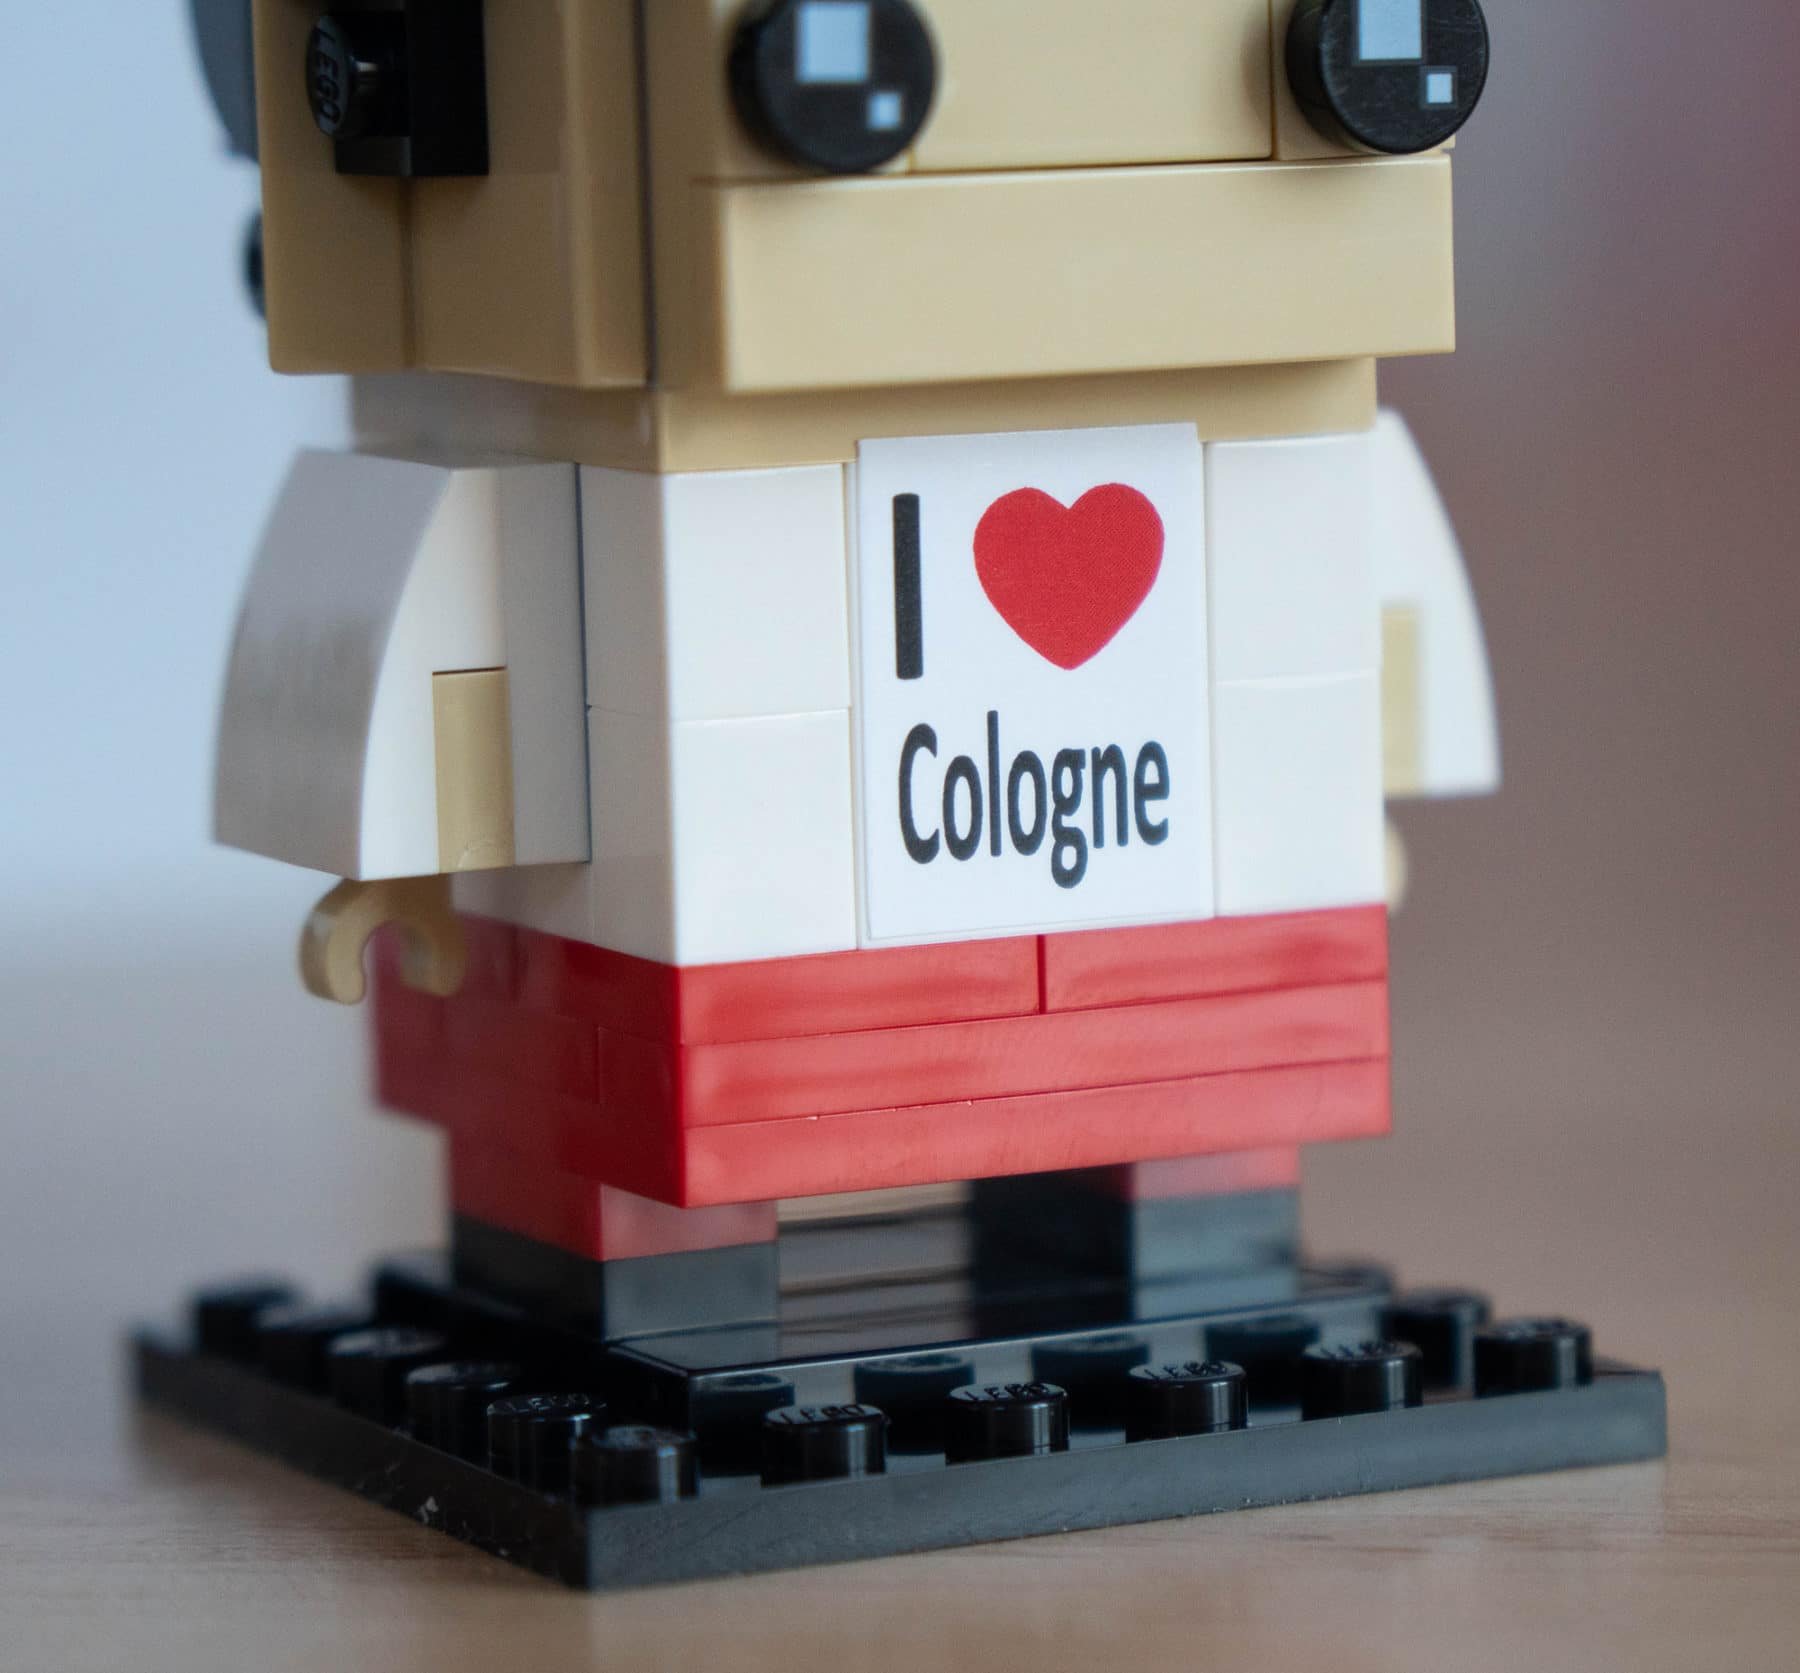 LEGO Cologne BrickHeadz 6302766 Review